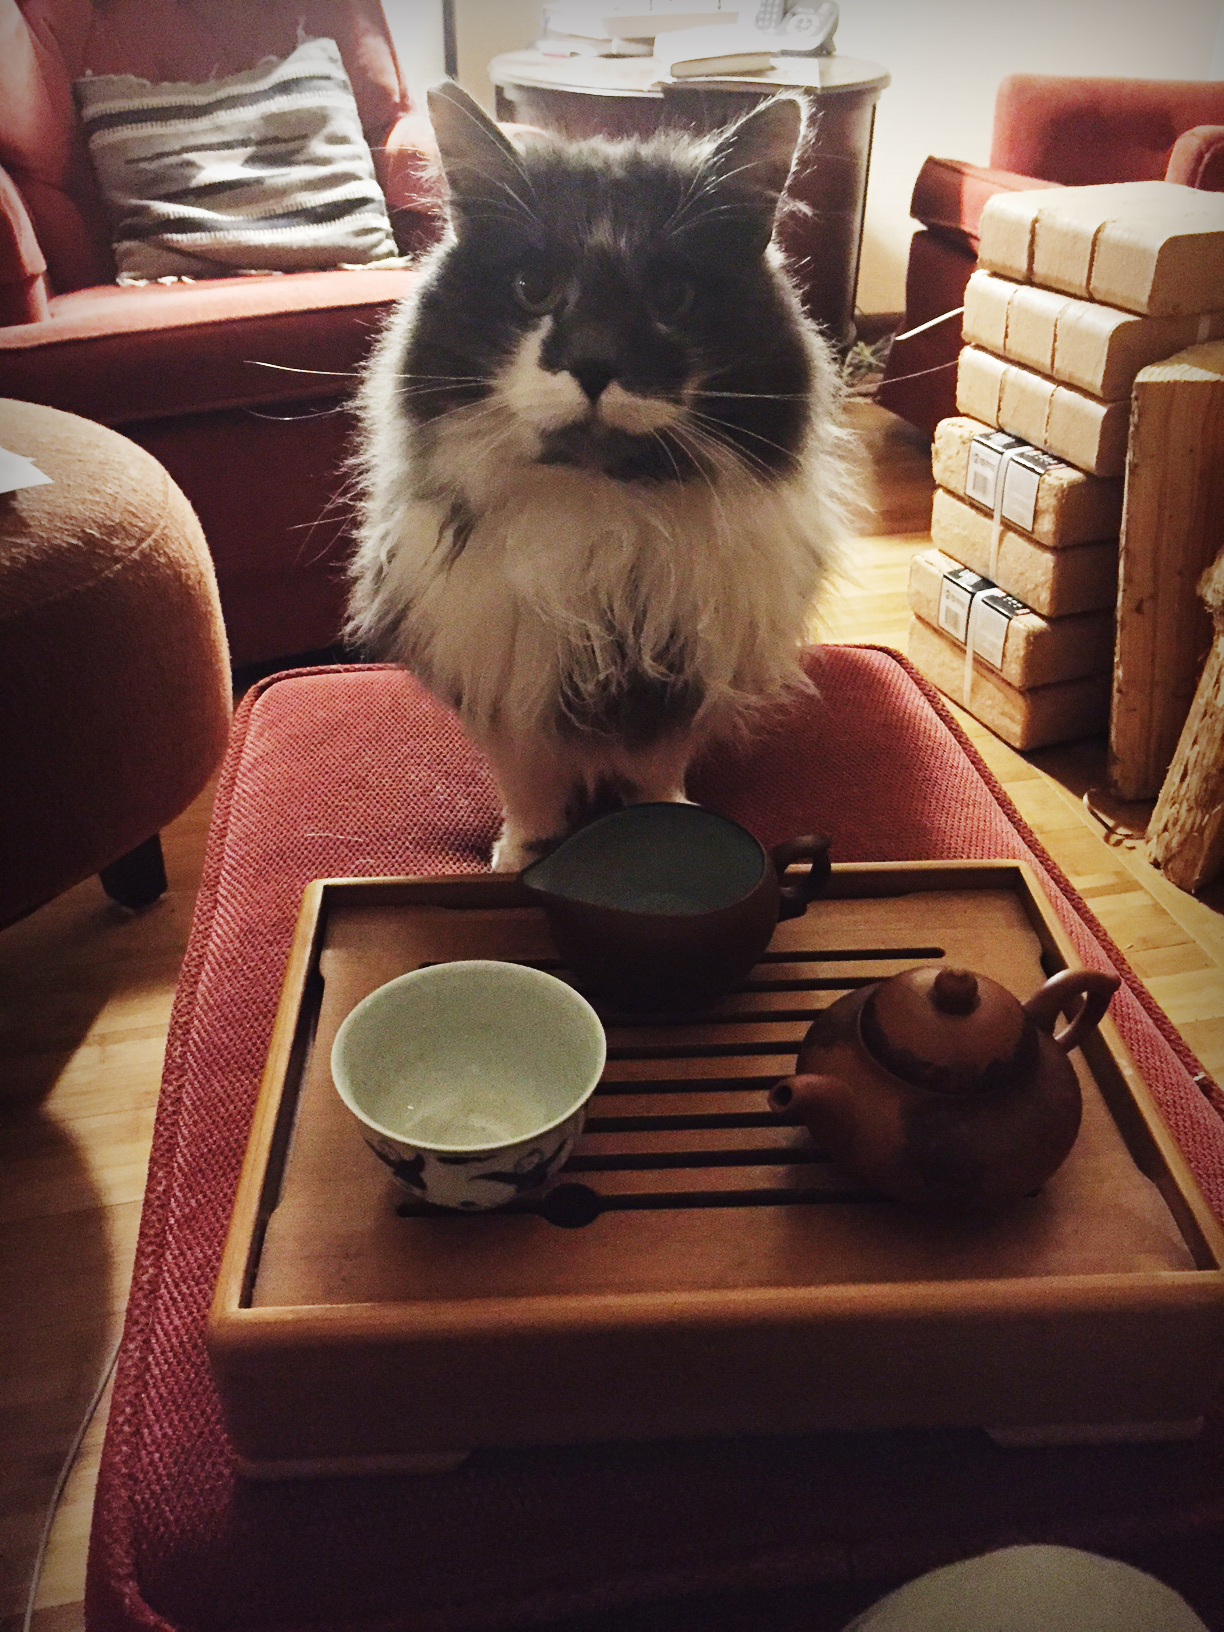 Cat sitting before a tea tray in a comfortable living room.